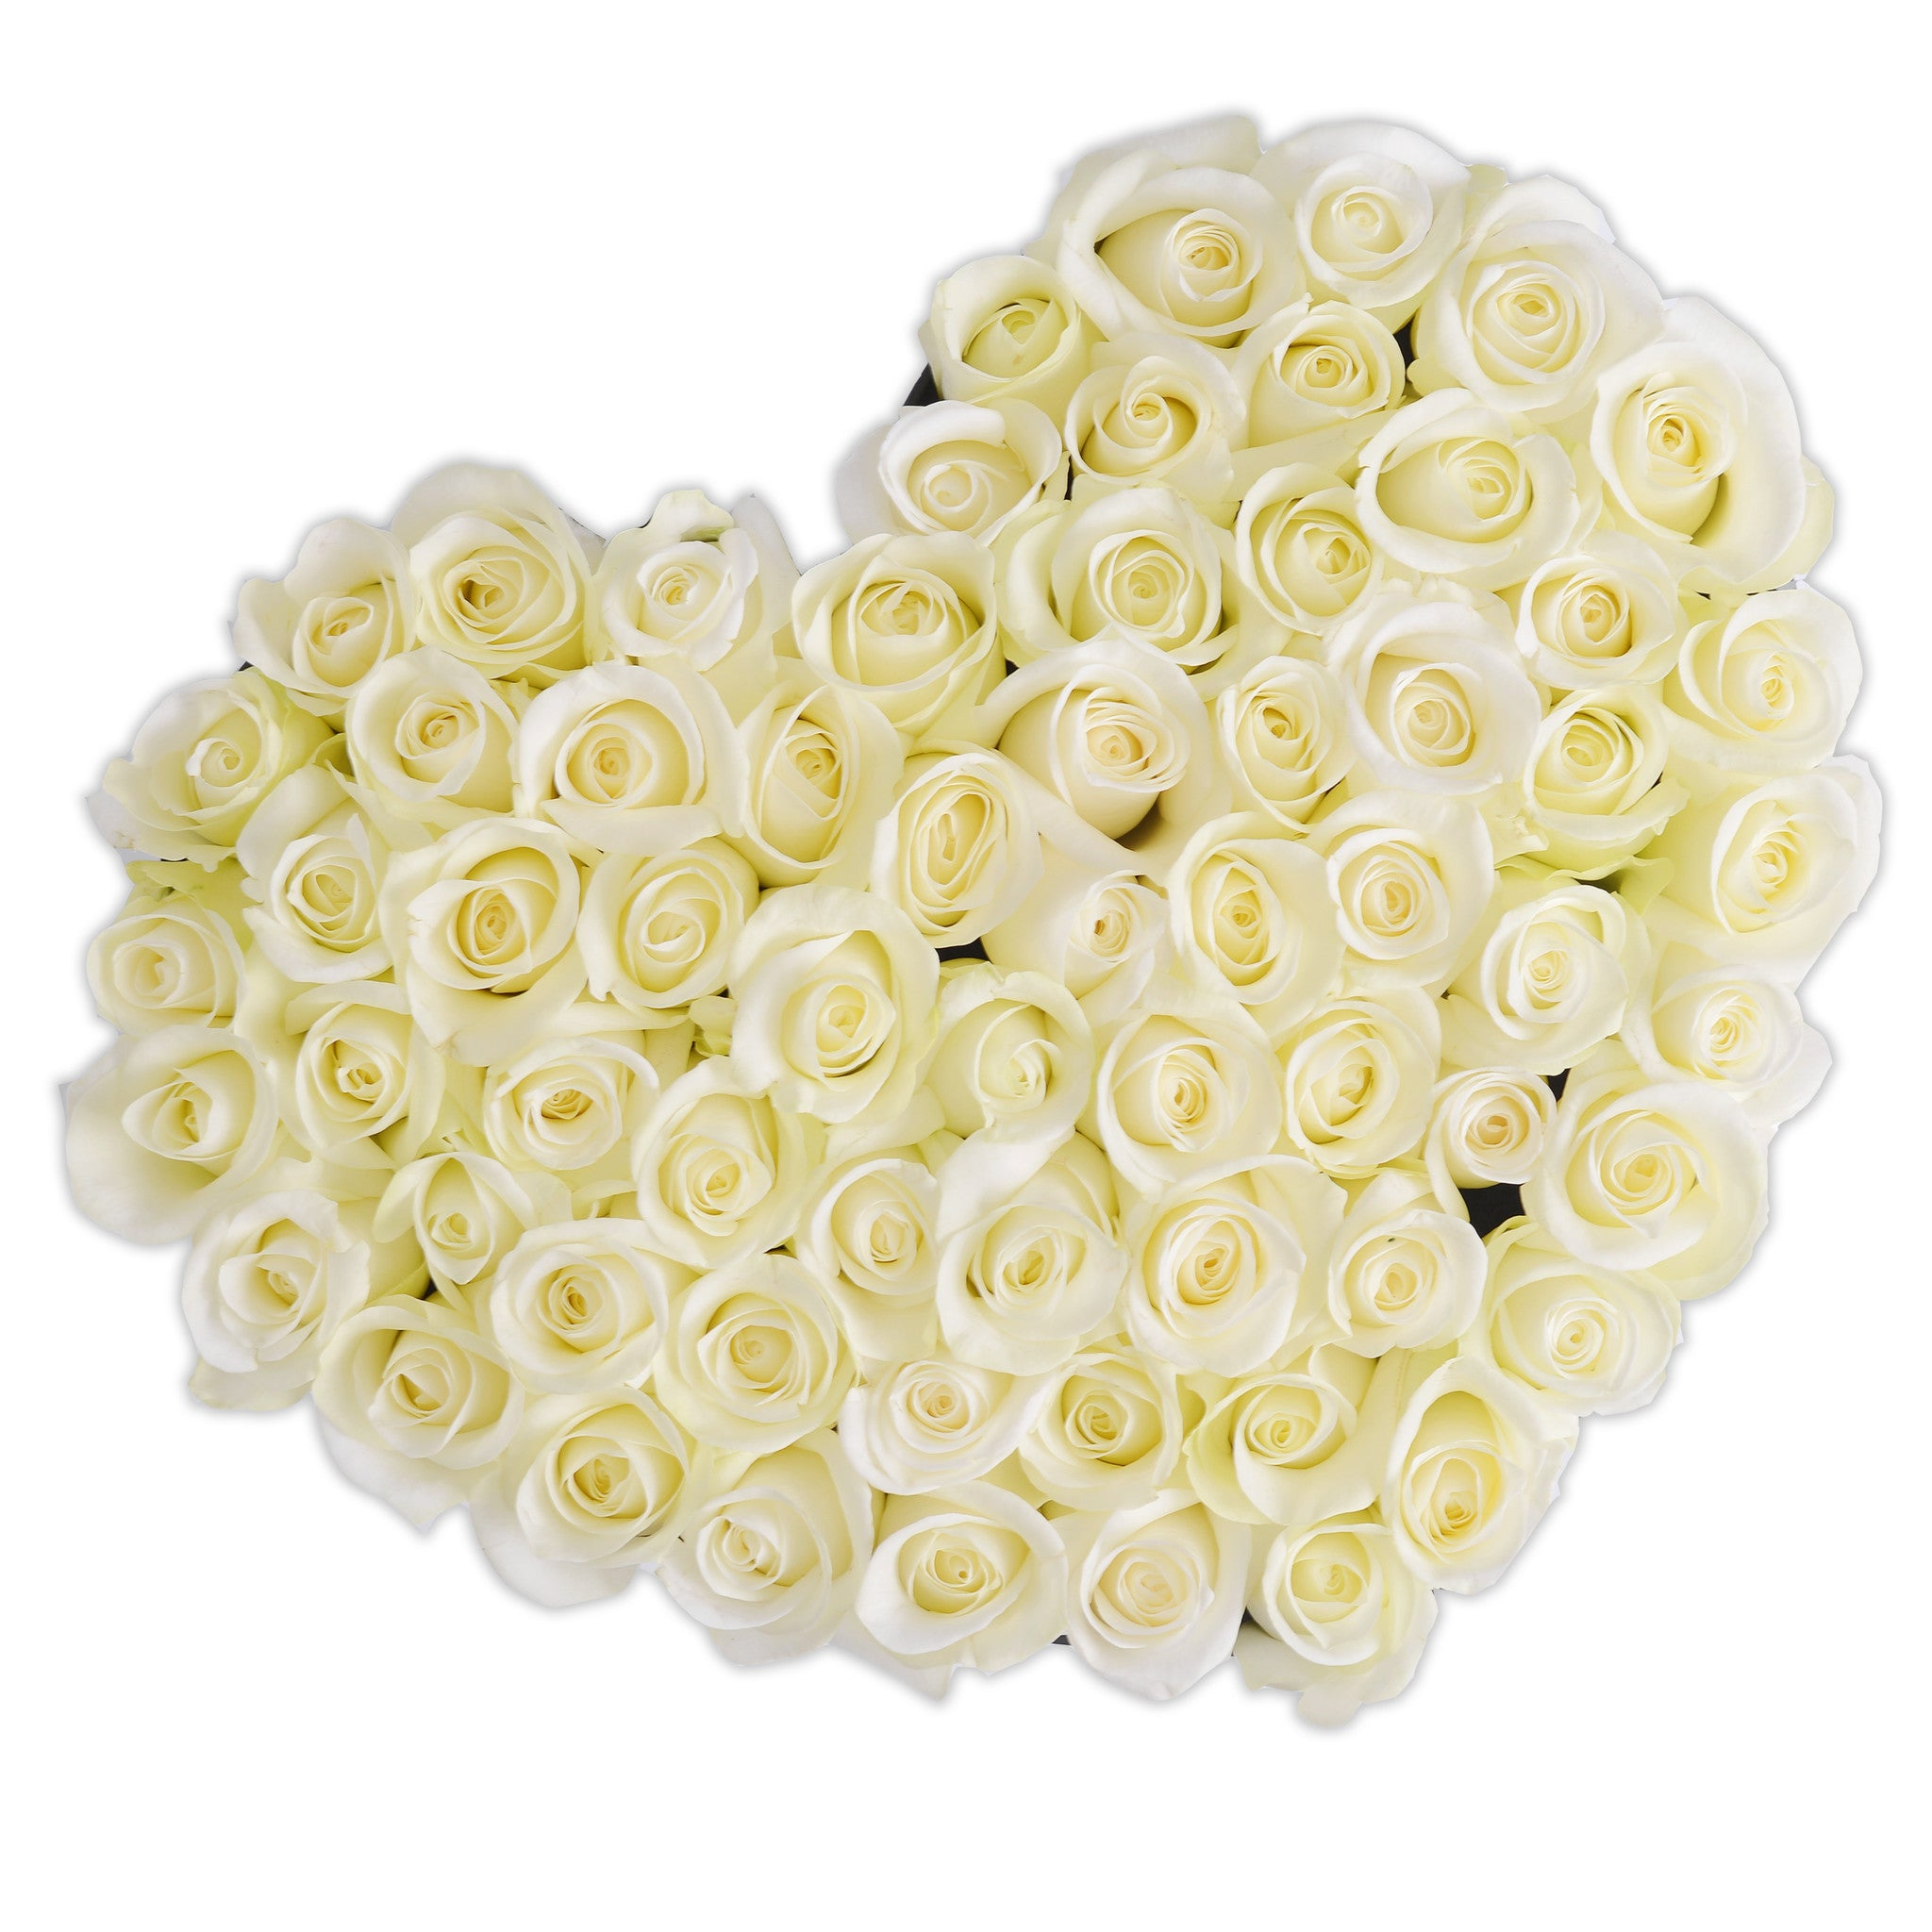 Heart - White Roses - Black Box - The Million Roses Budapest